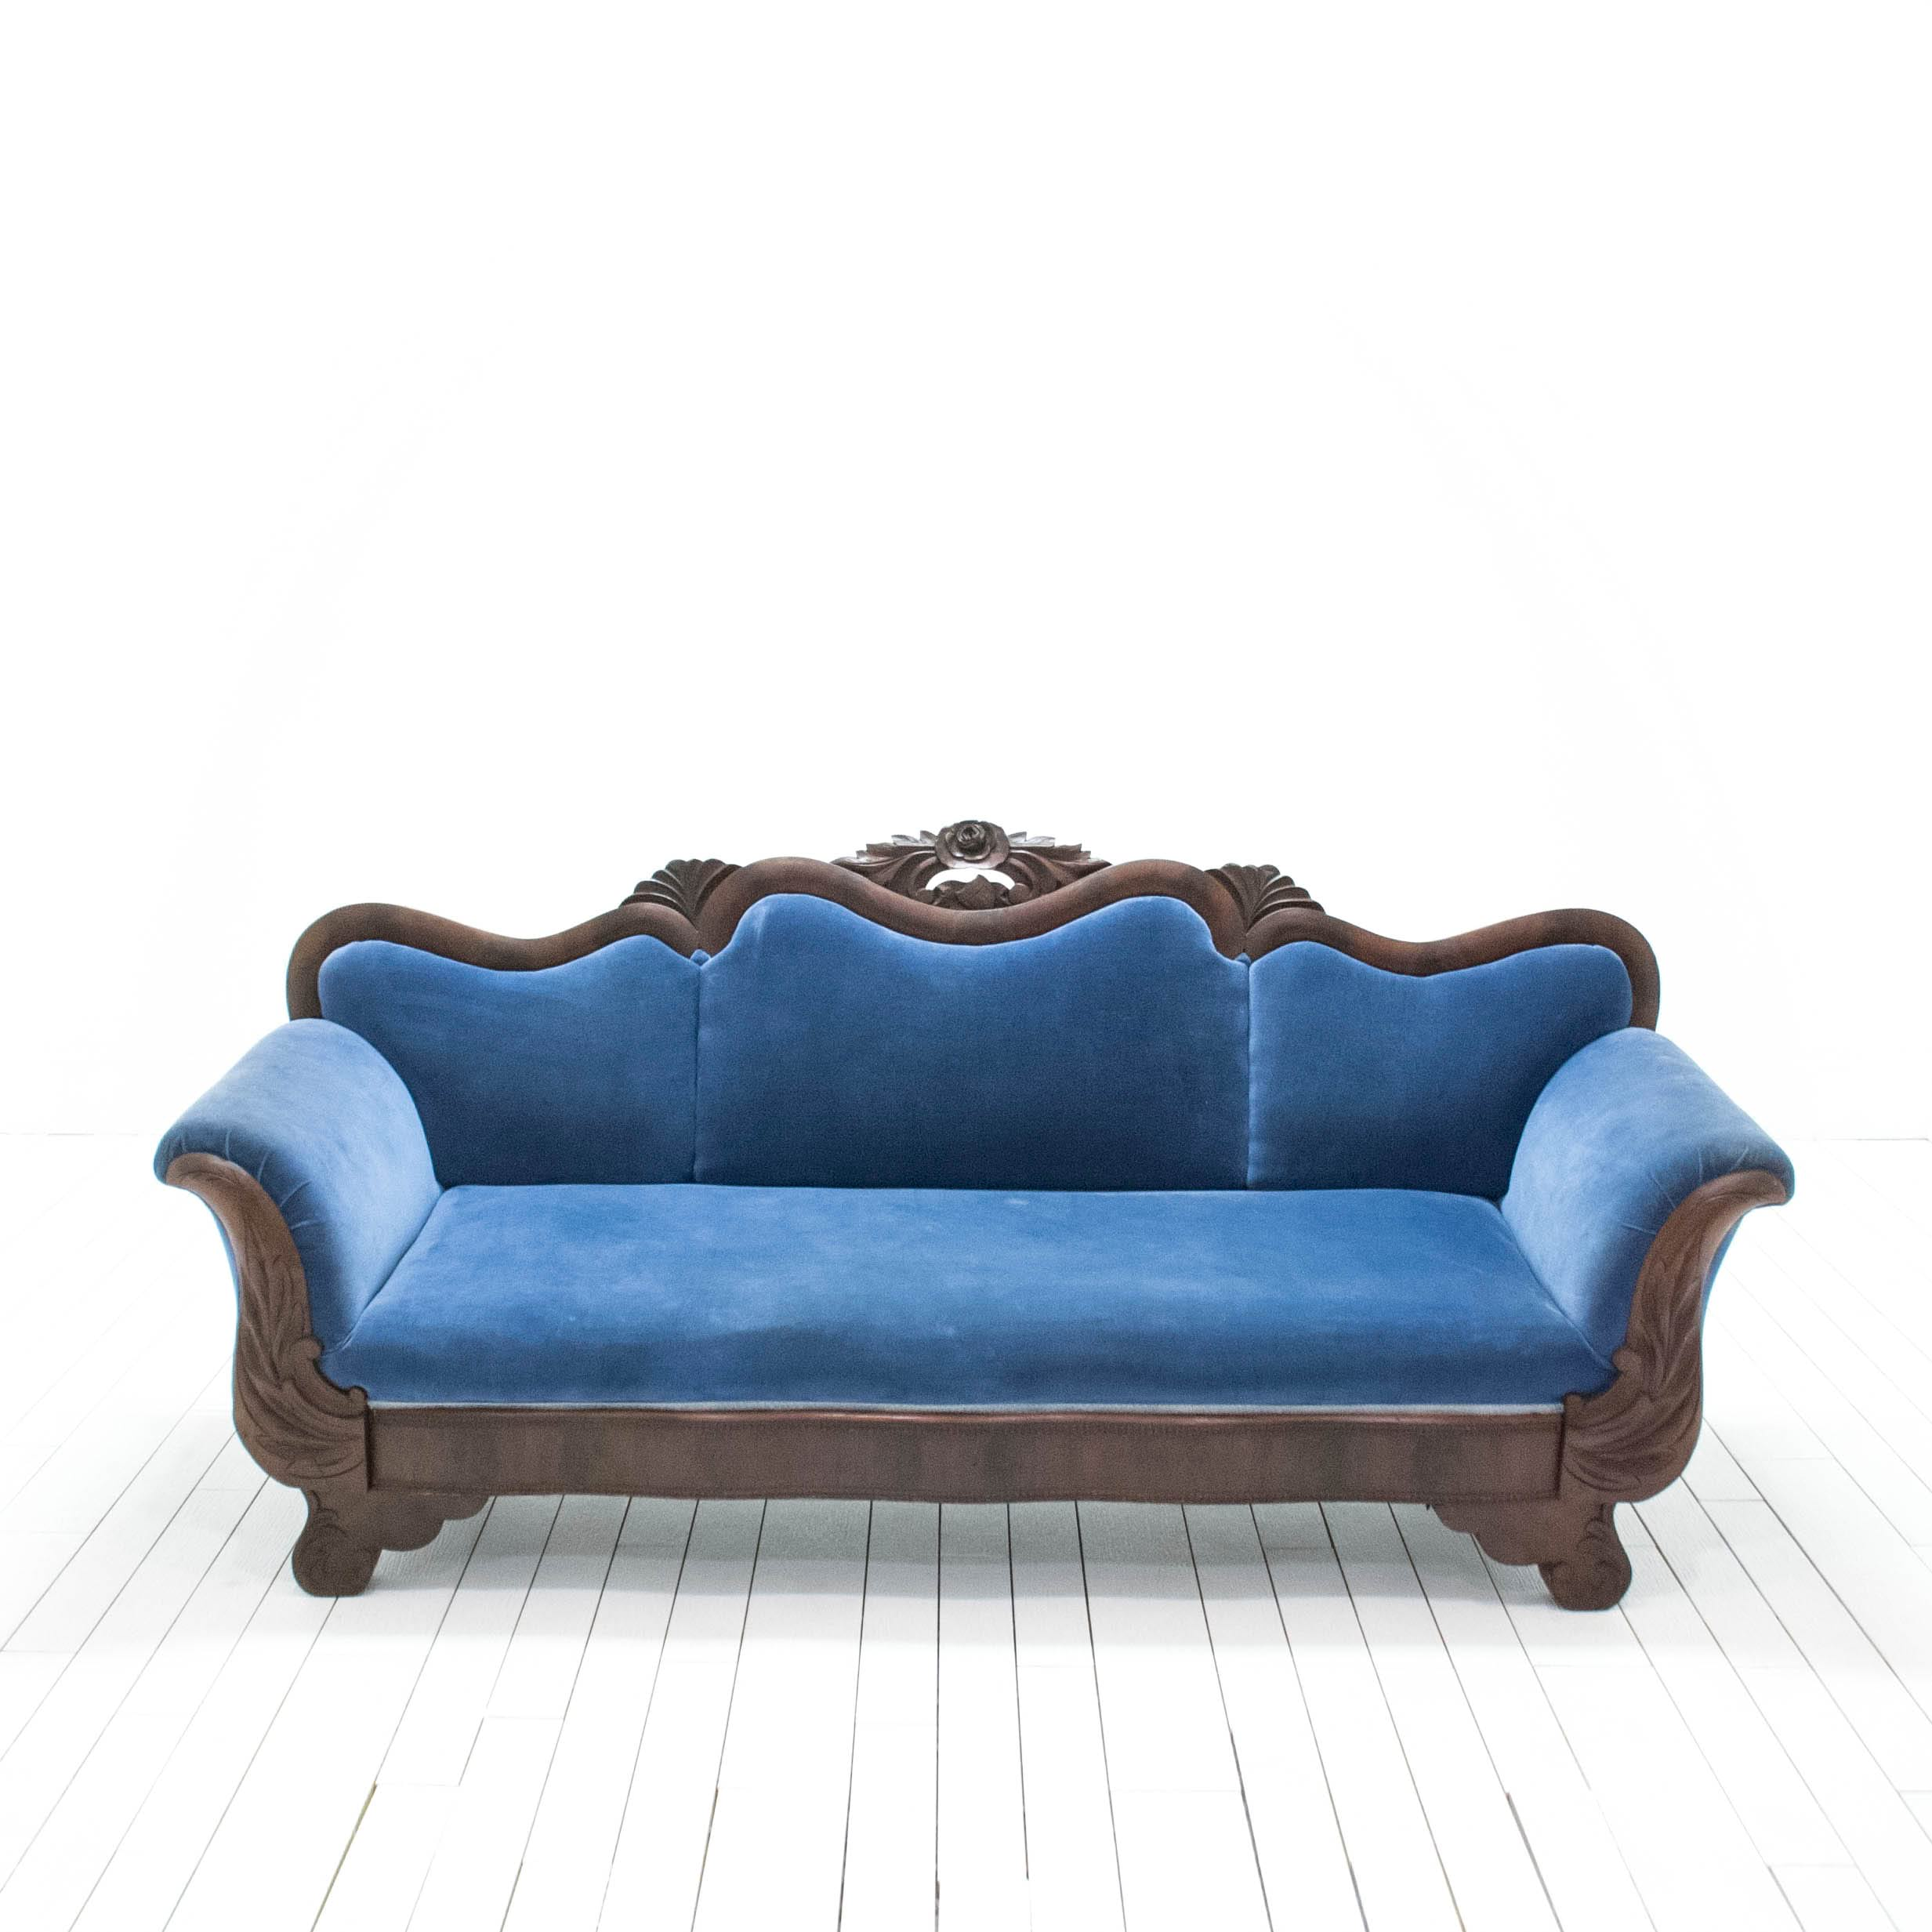 Christopher Sofa